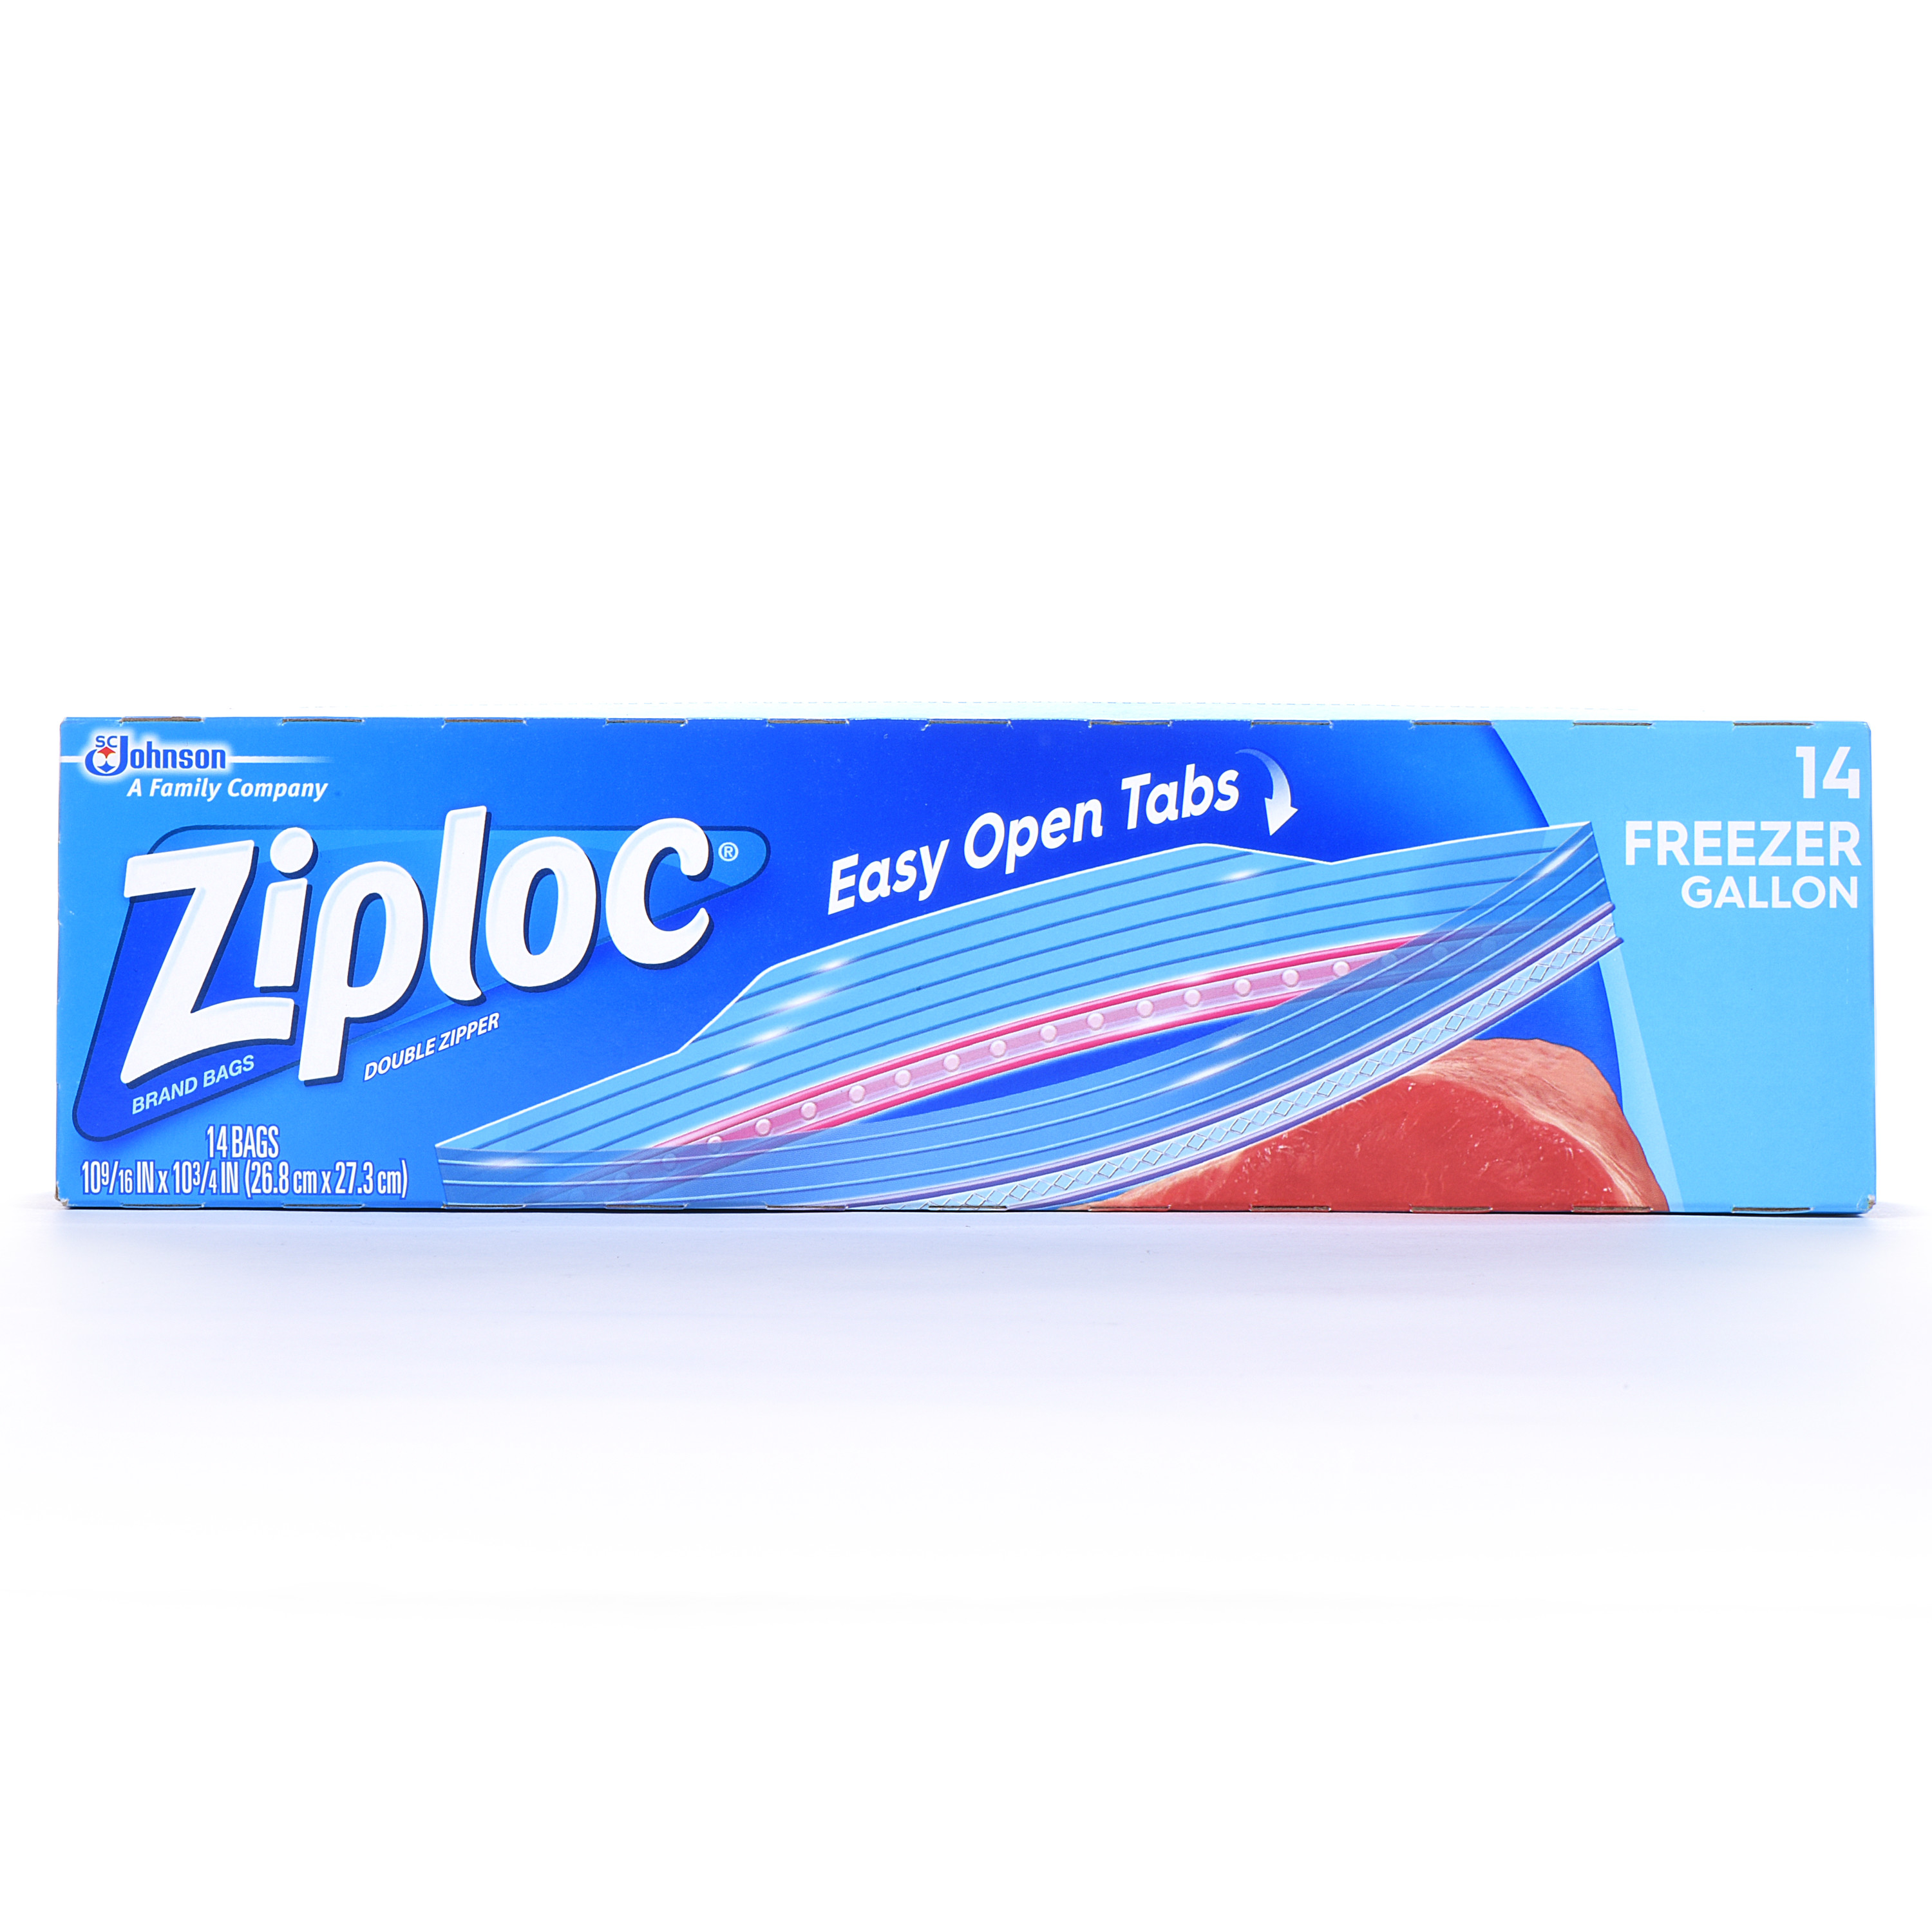 Ziploc Freezer Bags Gallon 14 count